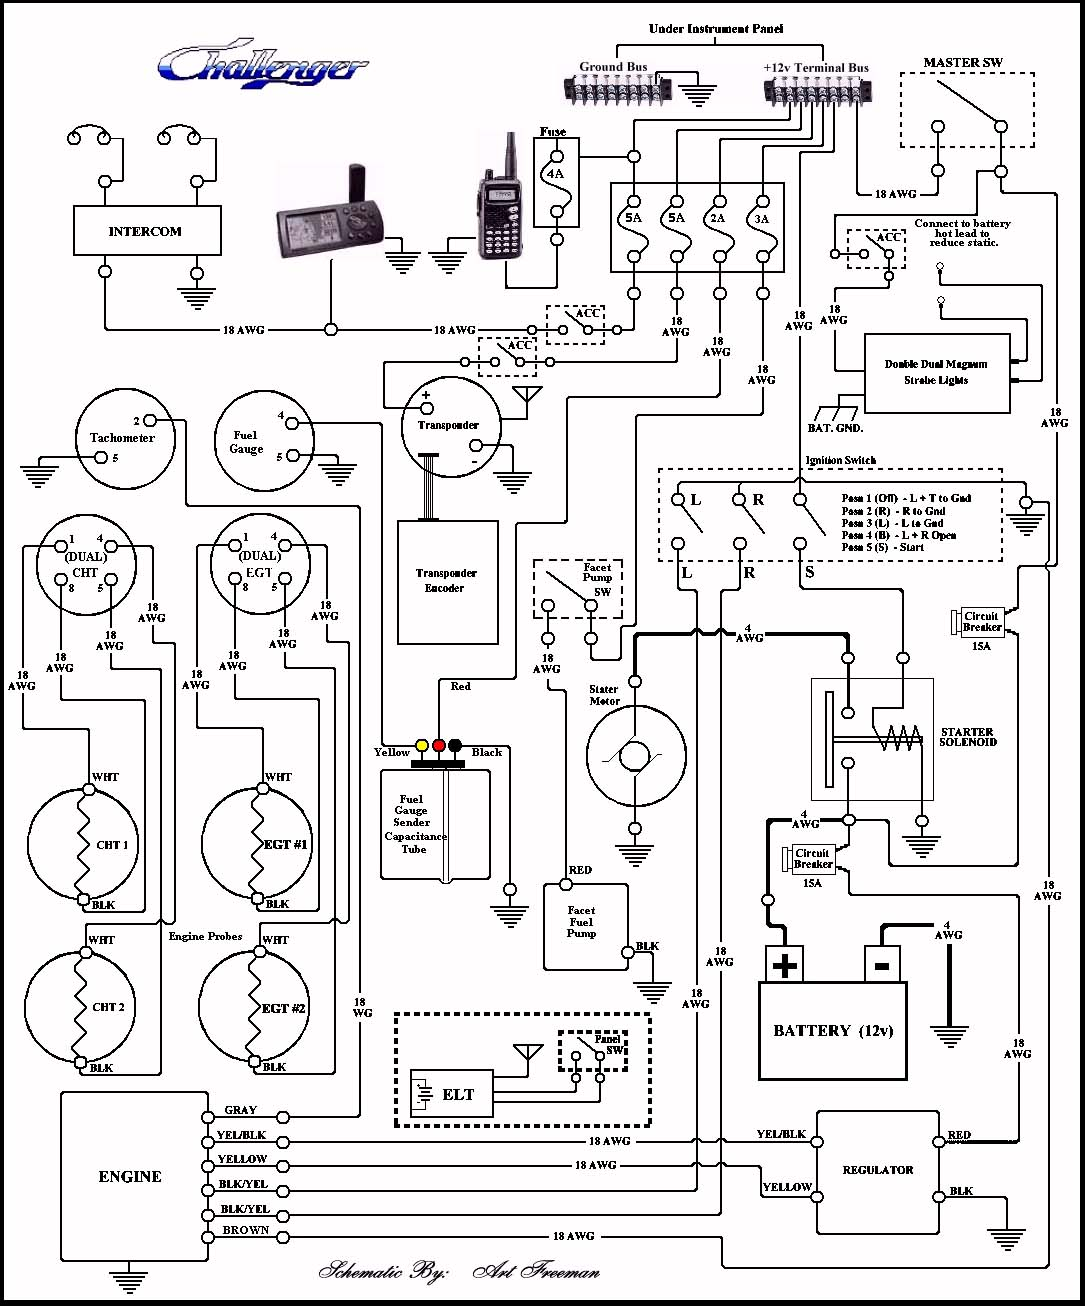 s this schematic was created for a analog instrument panel not digital also has a transponder encoder set up dual wing strobes as well as usual